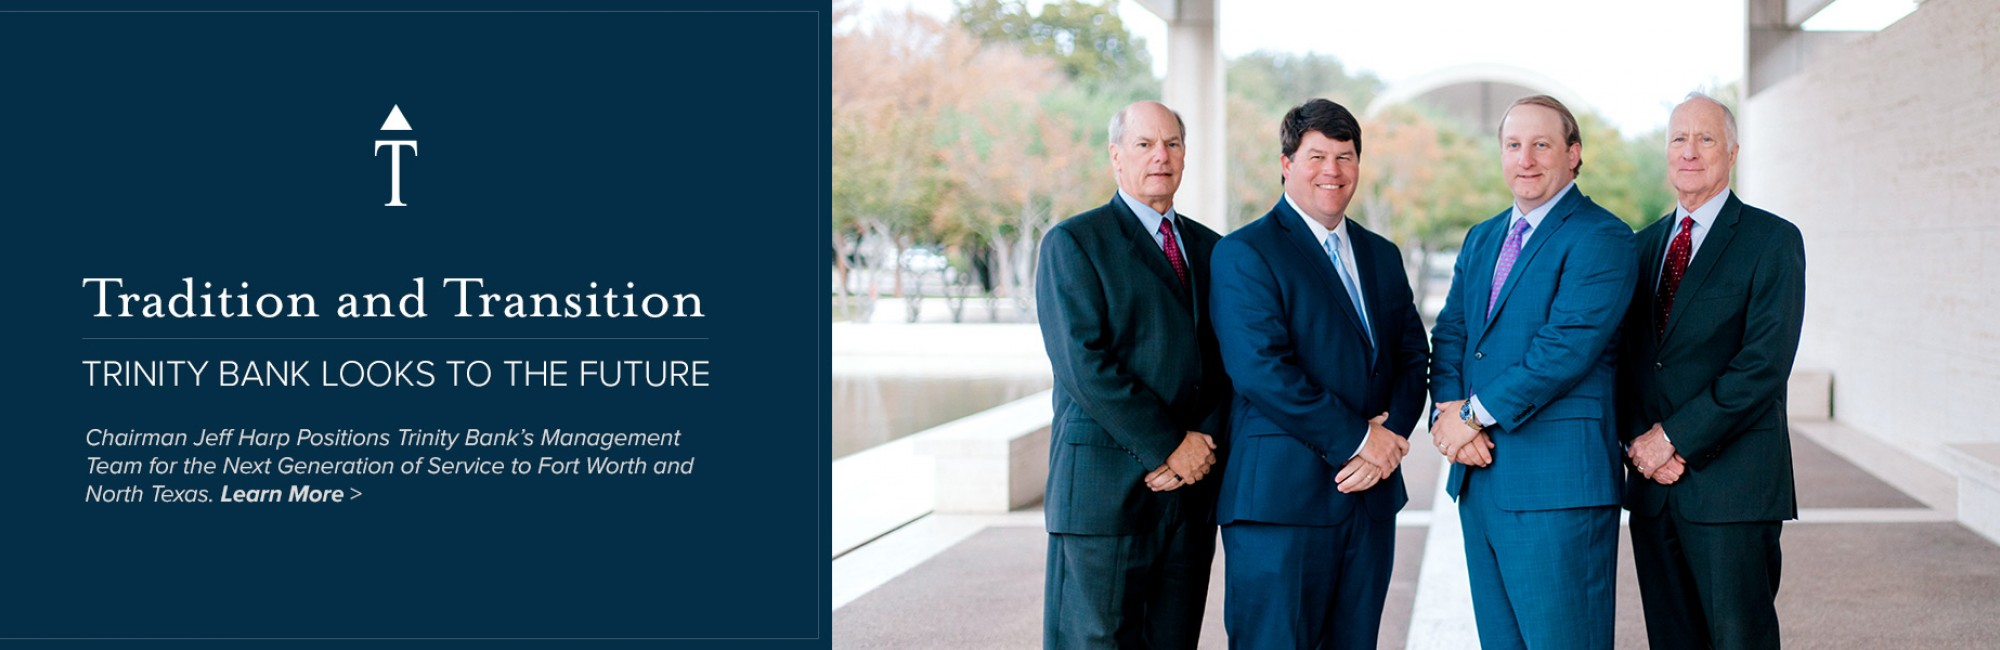 Chairman Jeff Harp Positions Trinity Bank's Management Team for the Next Generation of Service to Fort Worth and North Texas